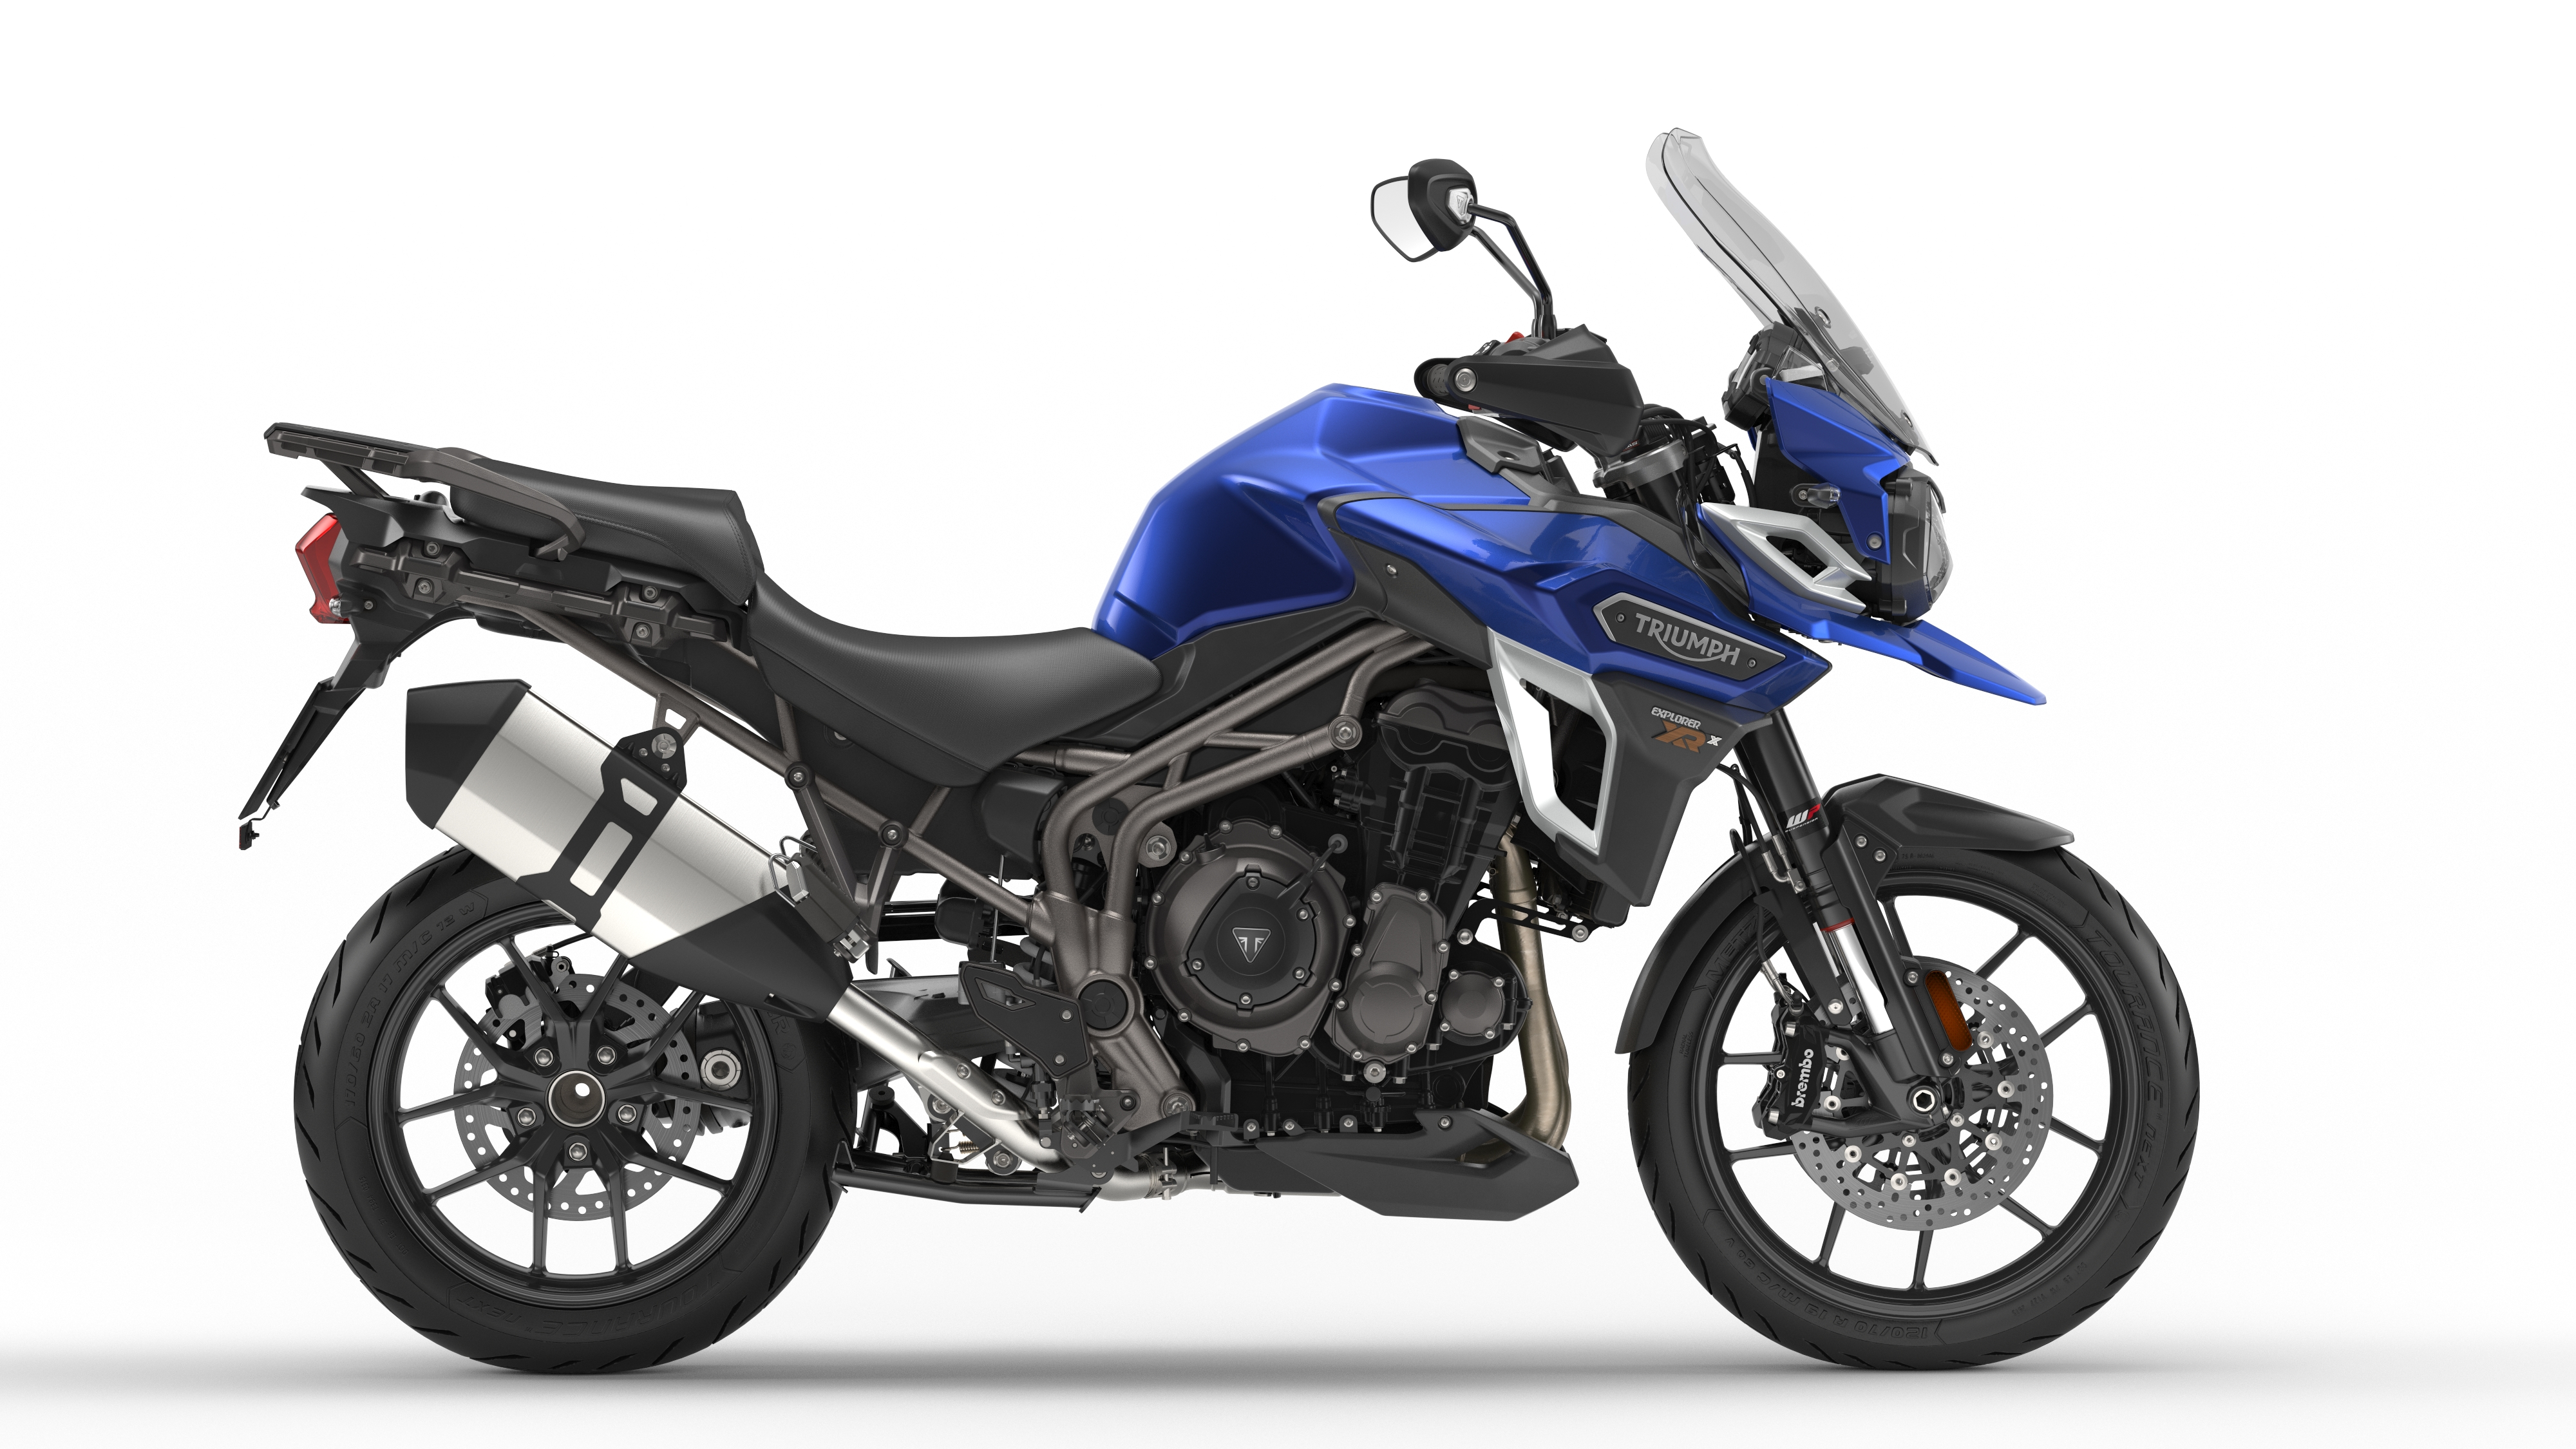 triumph tiger explorer xrx all technical data of the model tiger explorer xrx from triumph. Black Bedroom Furniture Sets. Home Design Ideas